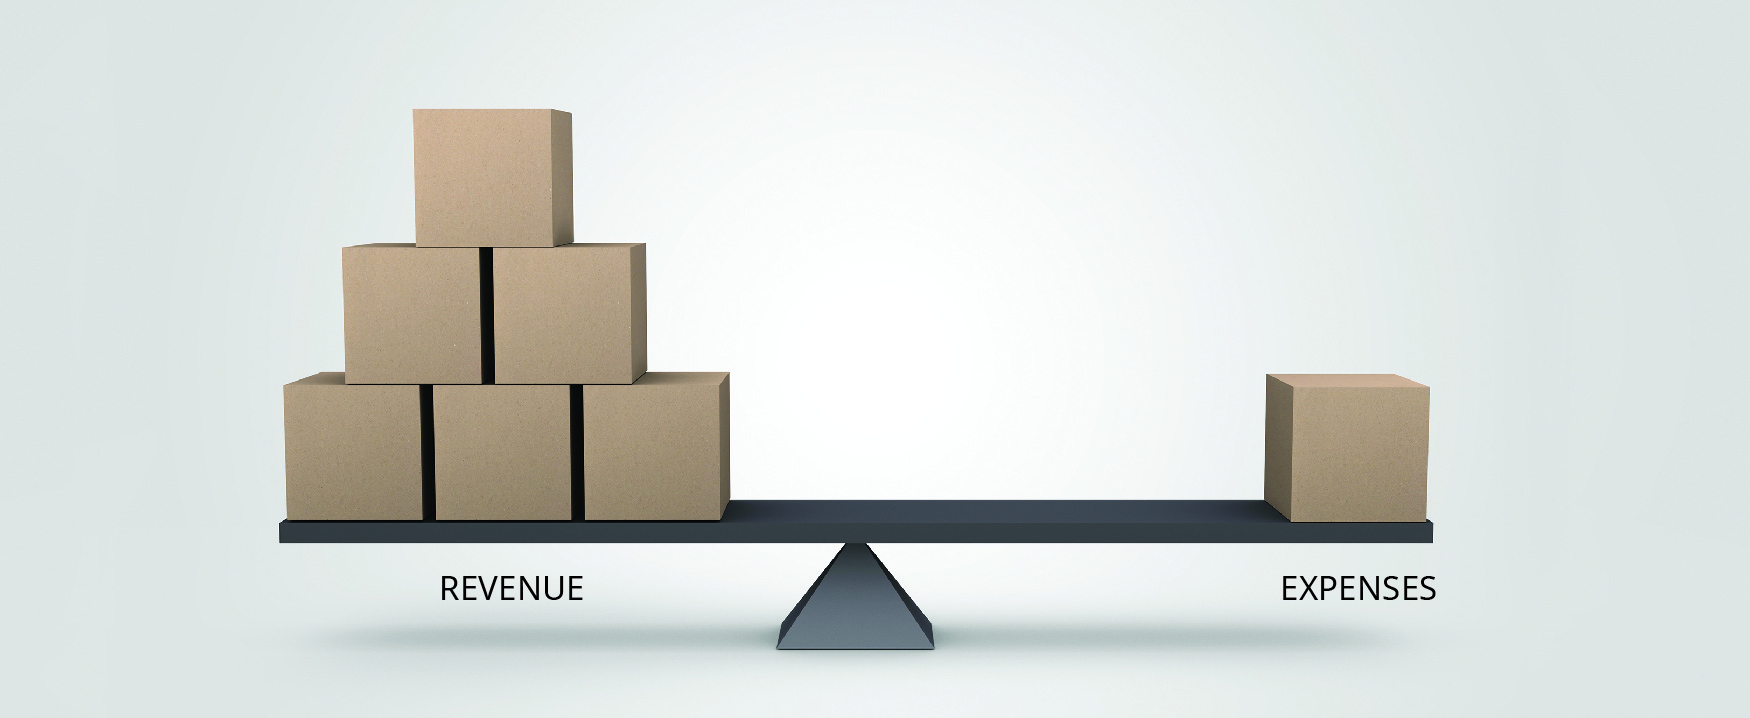 Picture of a scale with Revenue (represented by six boxes) on one side and Expenses (represented by one box) on the other.